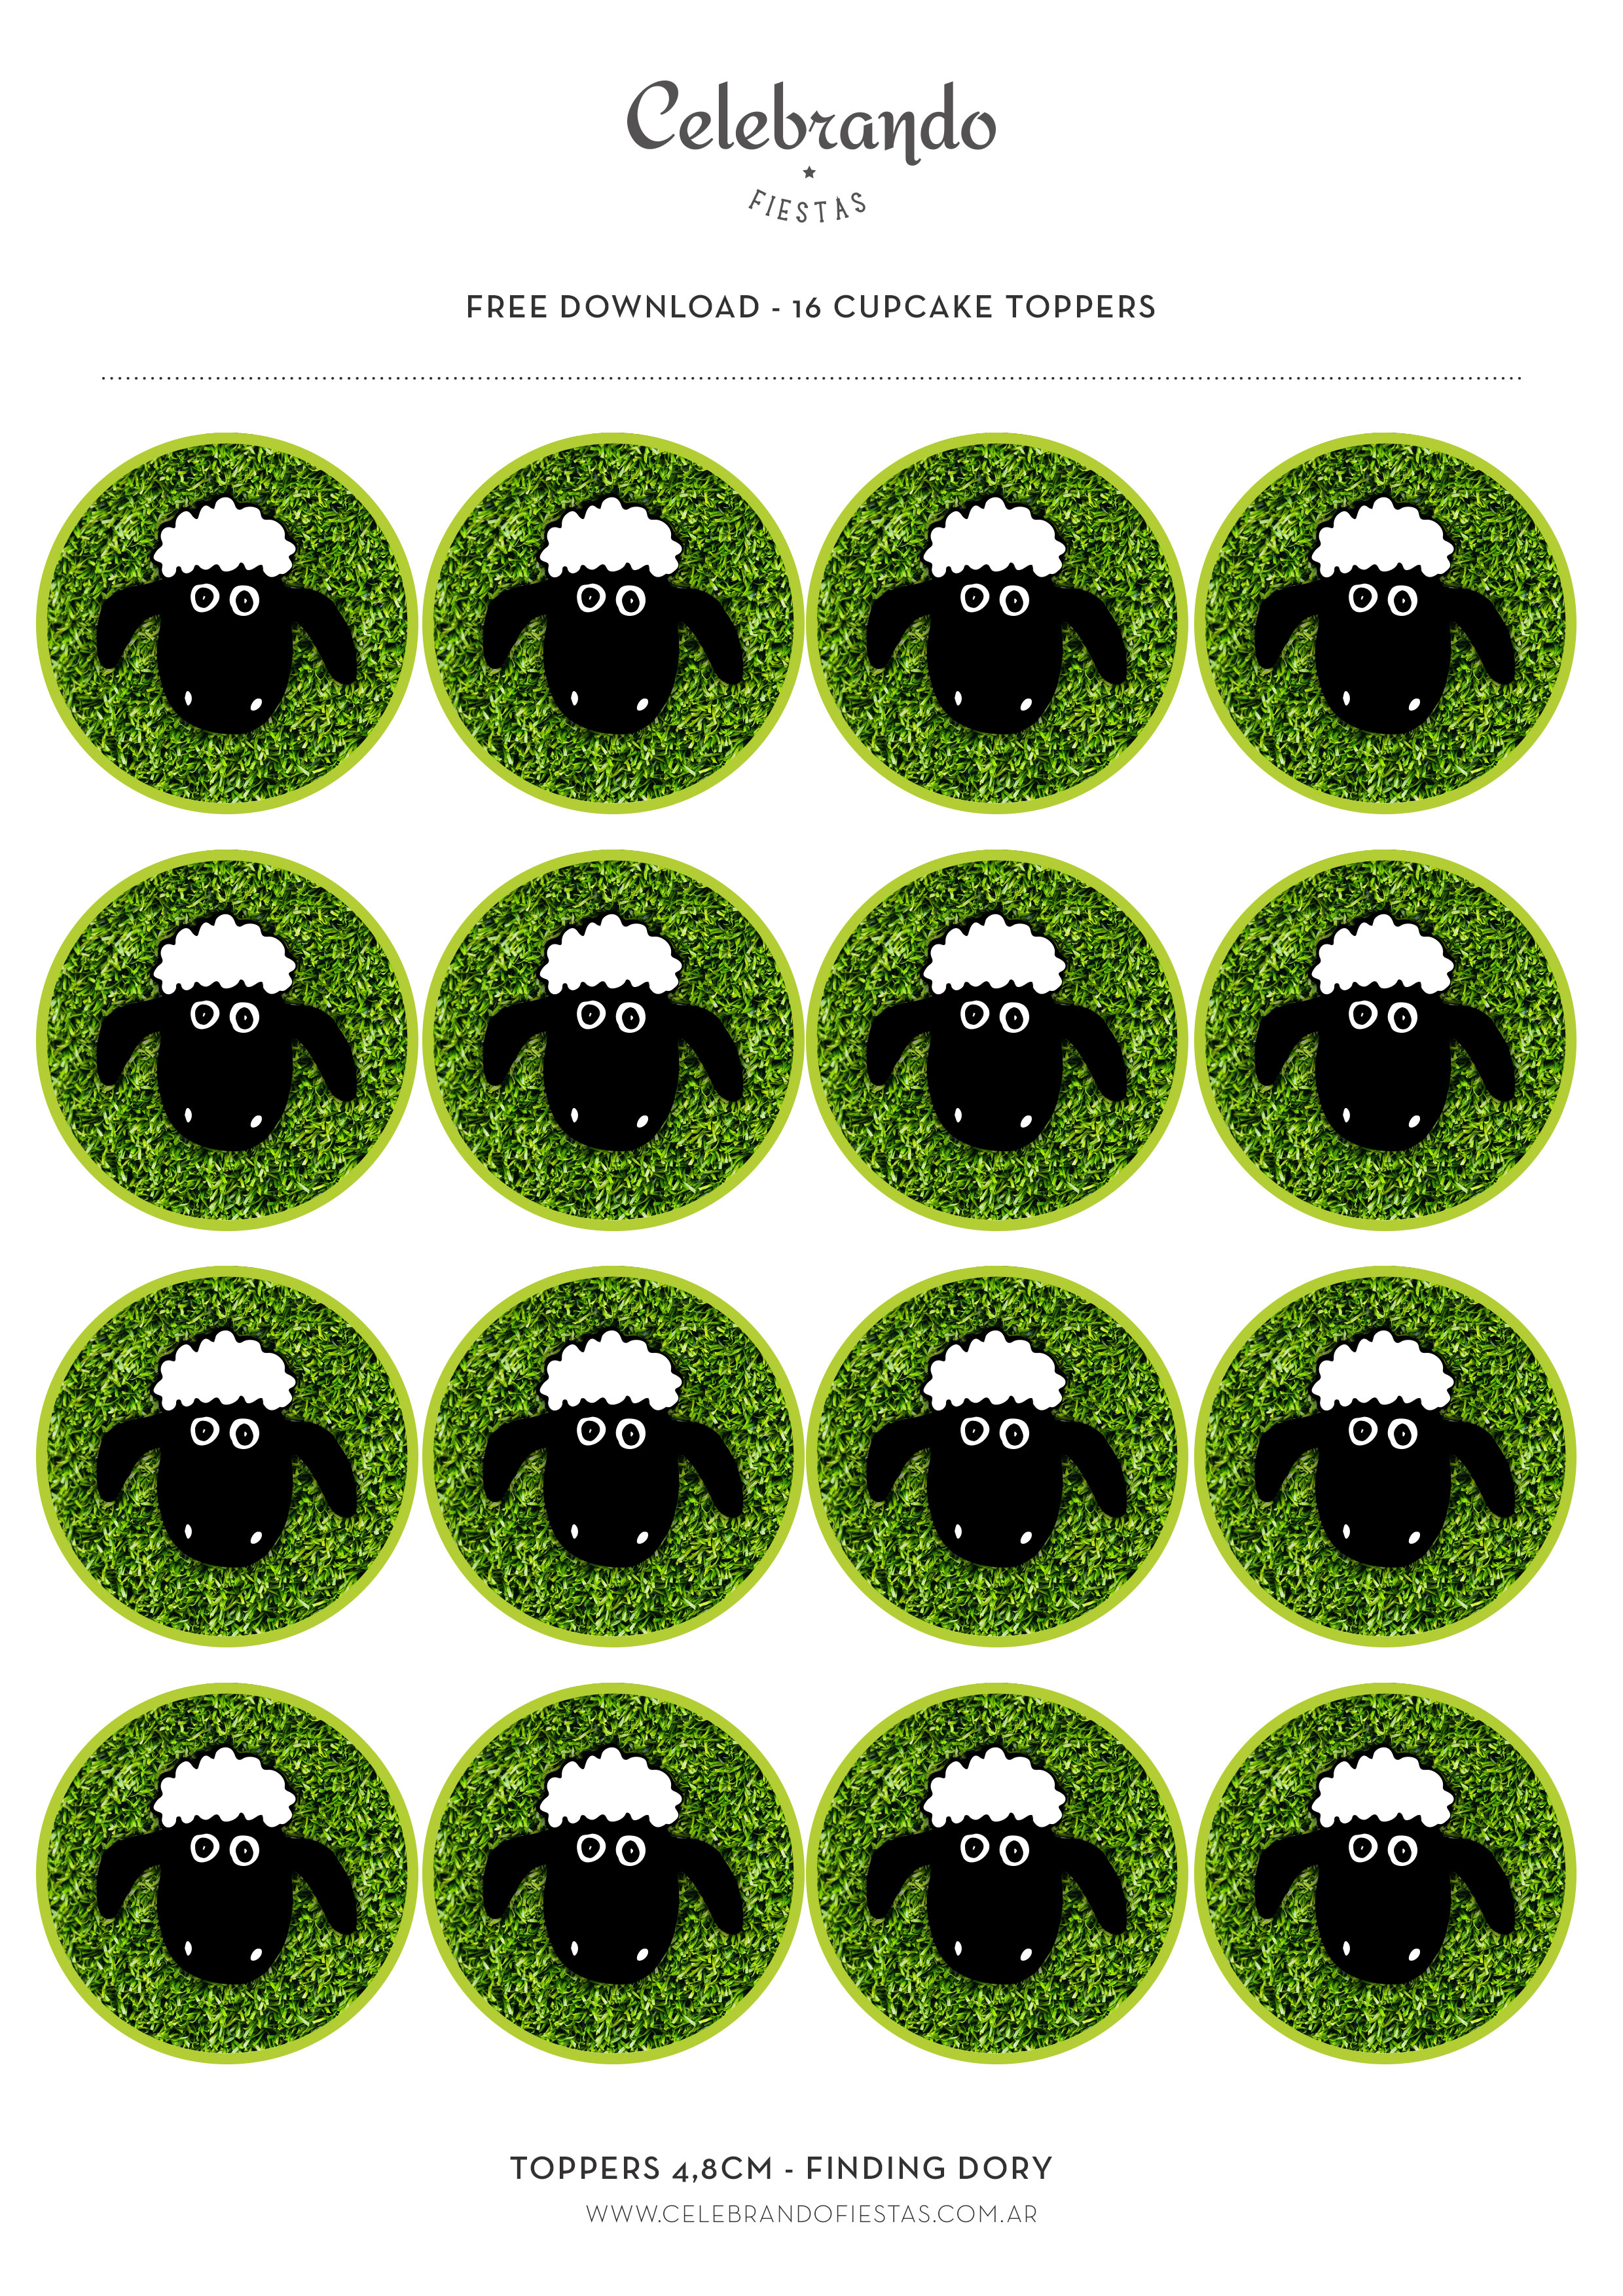 shaun_the_sheep_toppers_free_download